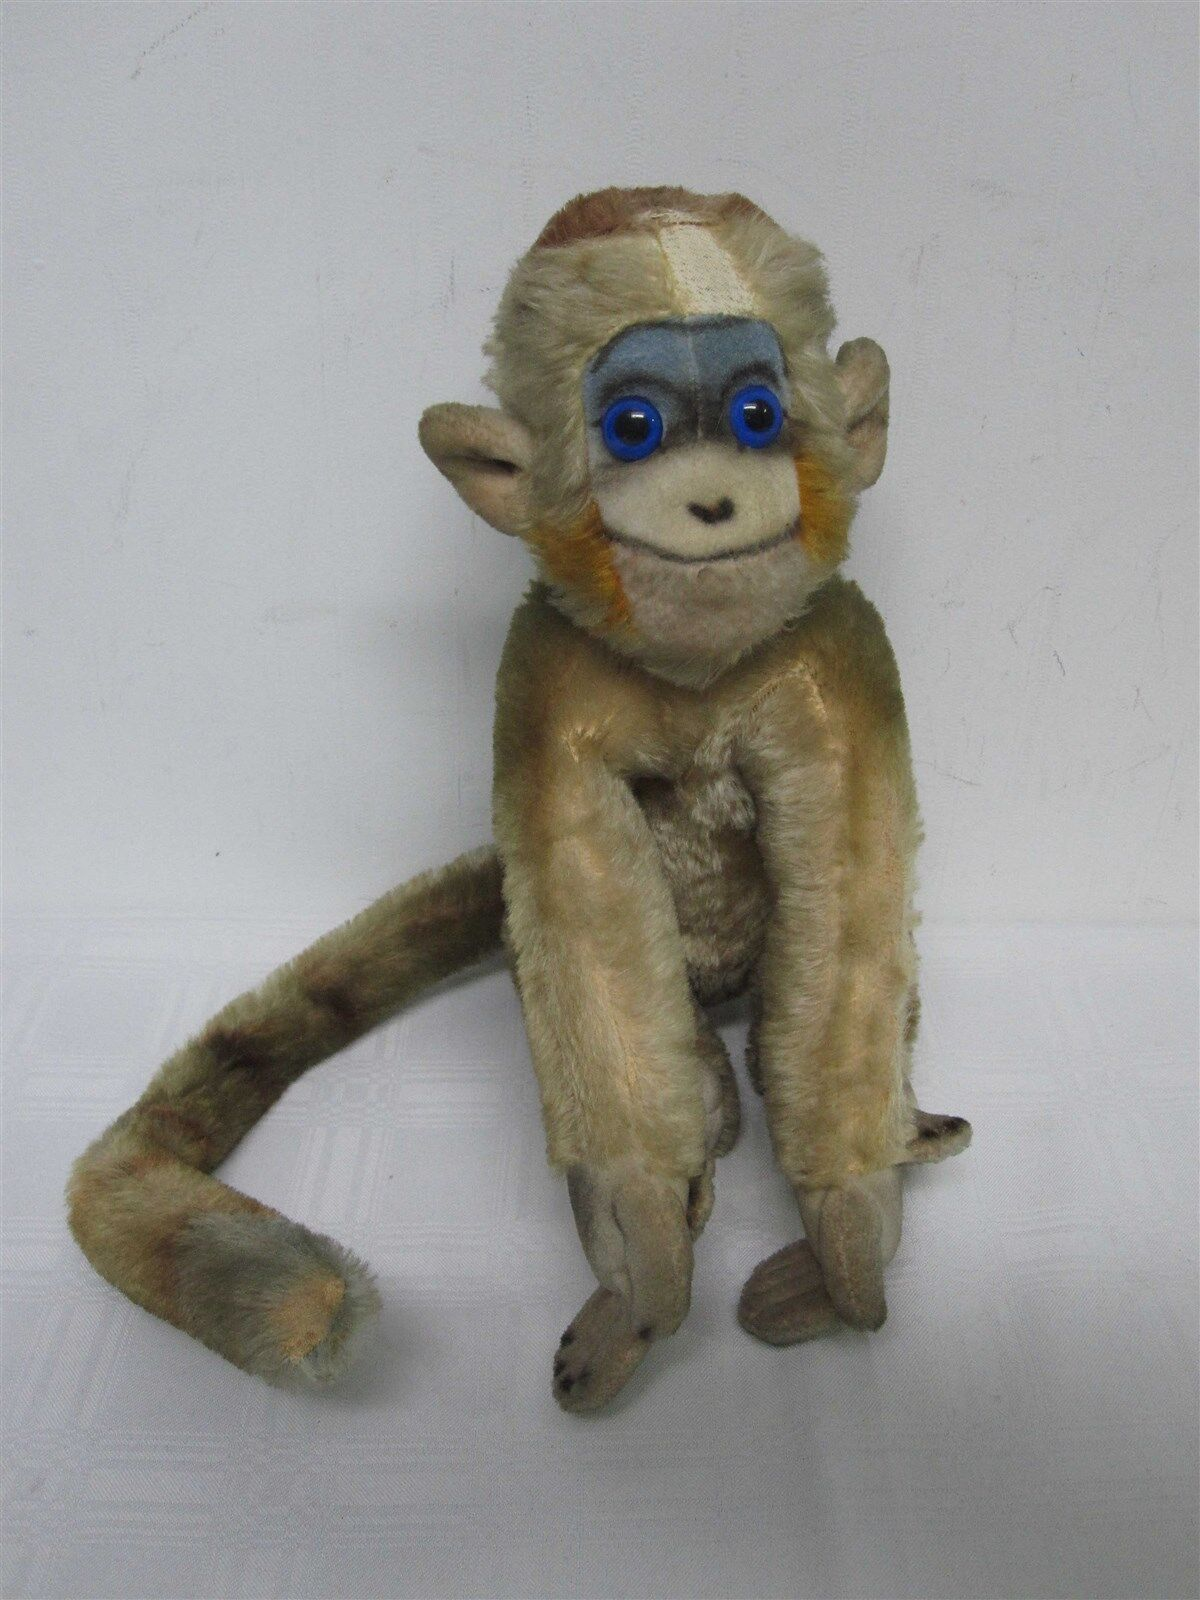 VINTAGE STEIFF MOHAIR MUNGO MONKEY with LONG TAIL & blueE EYES 12